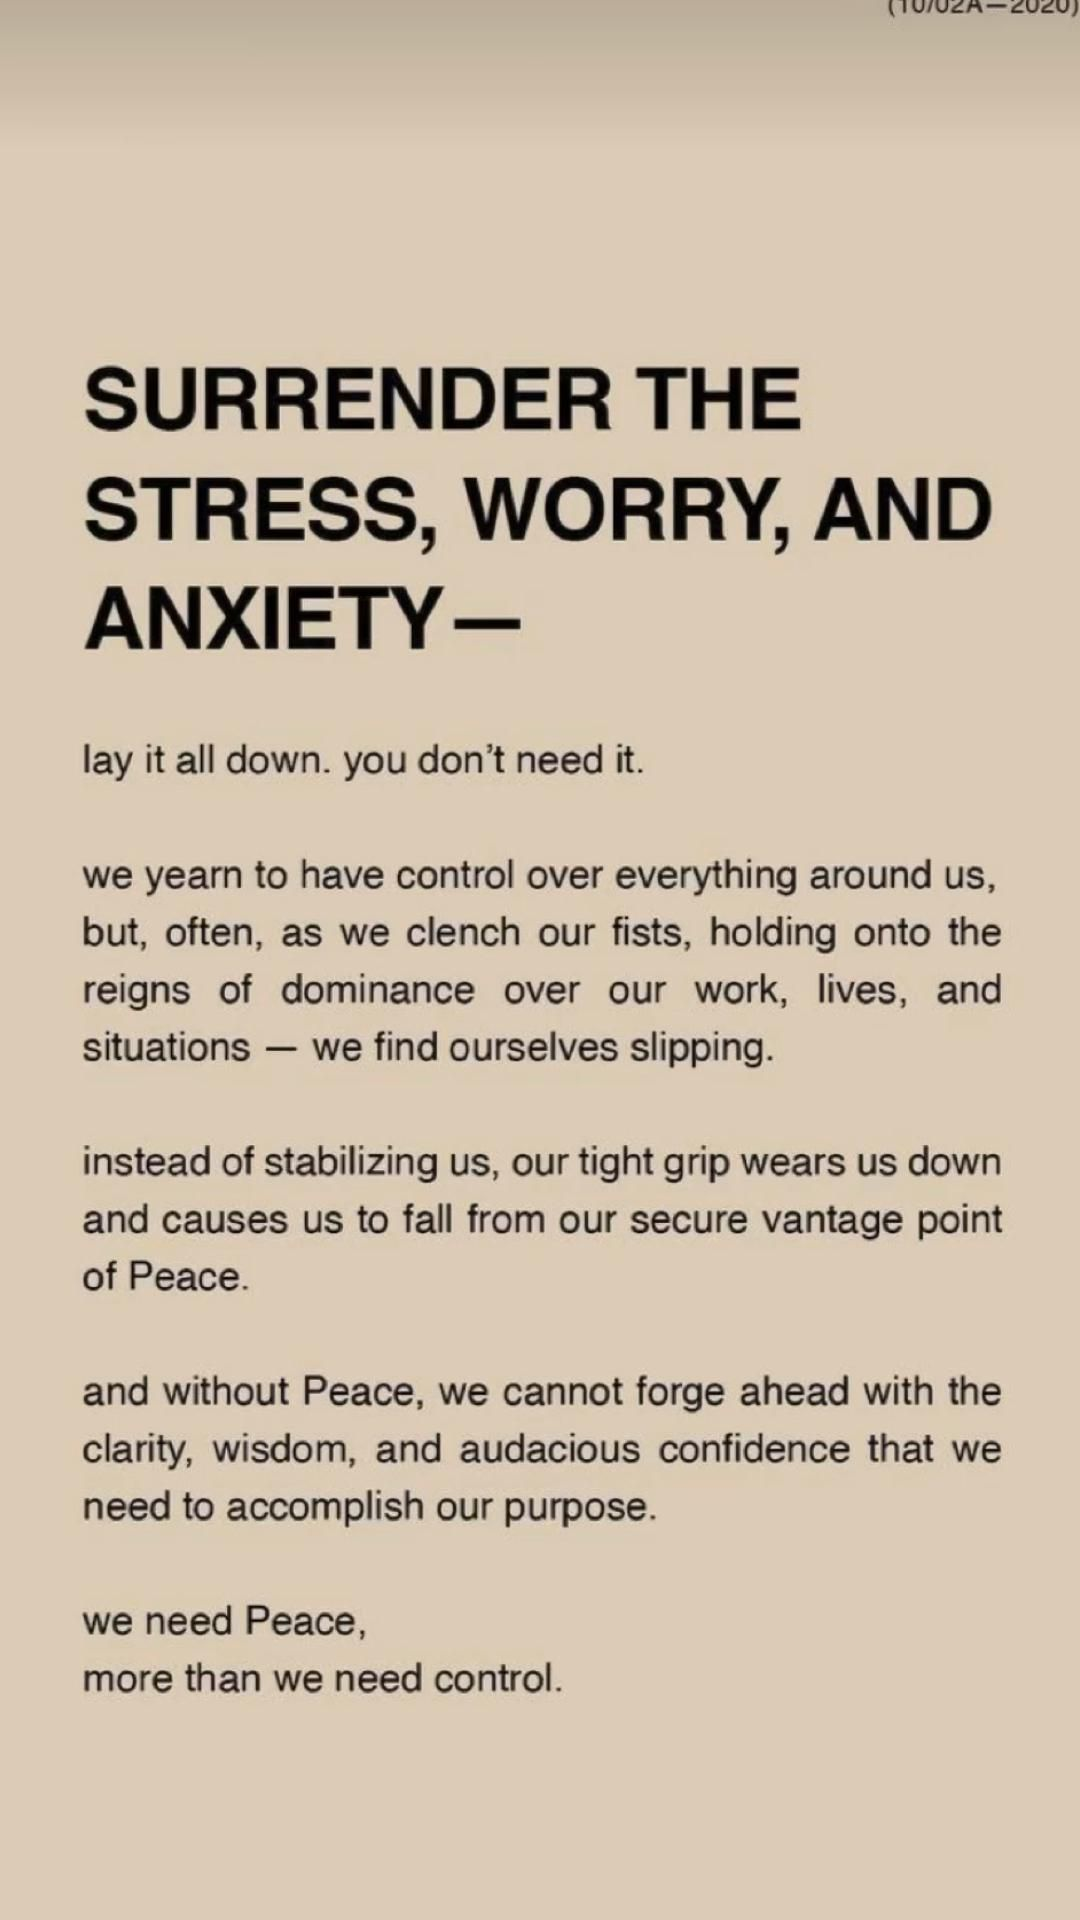 Surrender stress worry and Anxiety